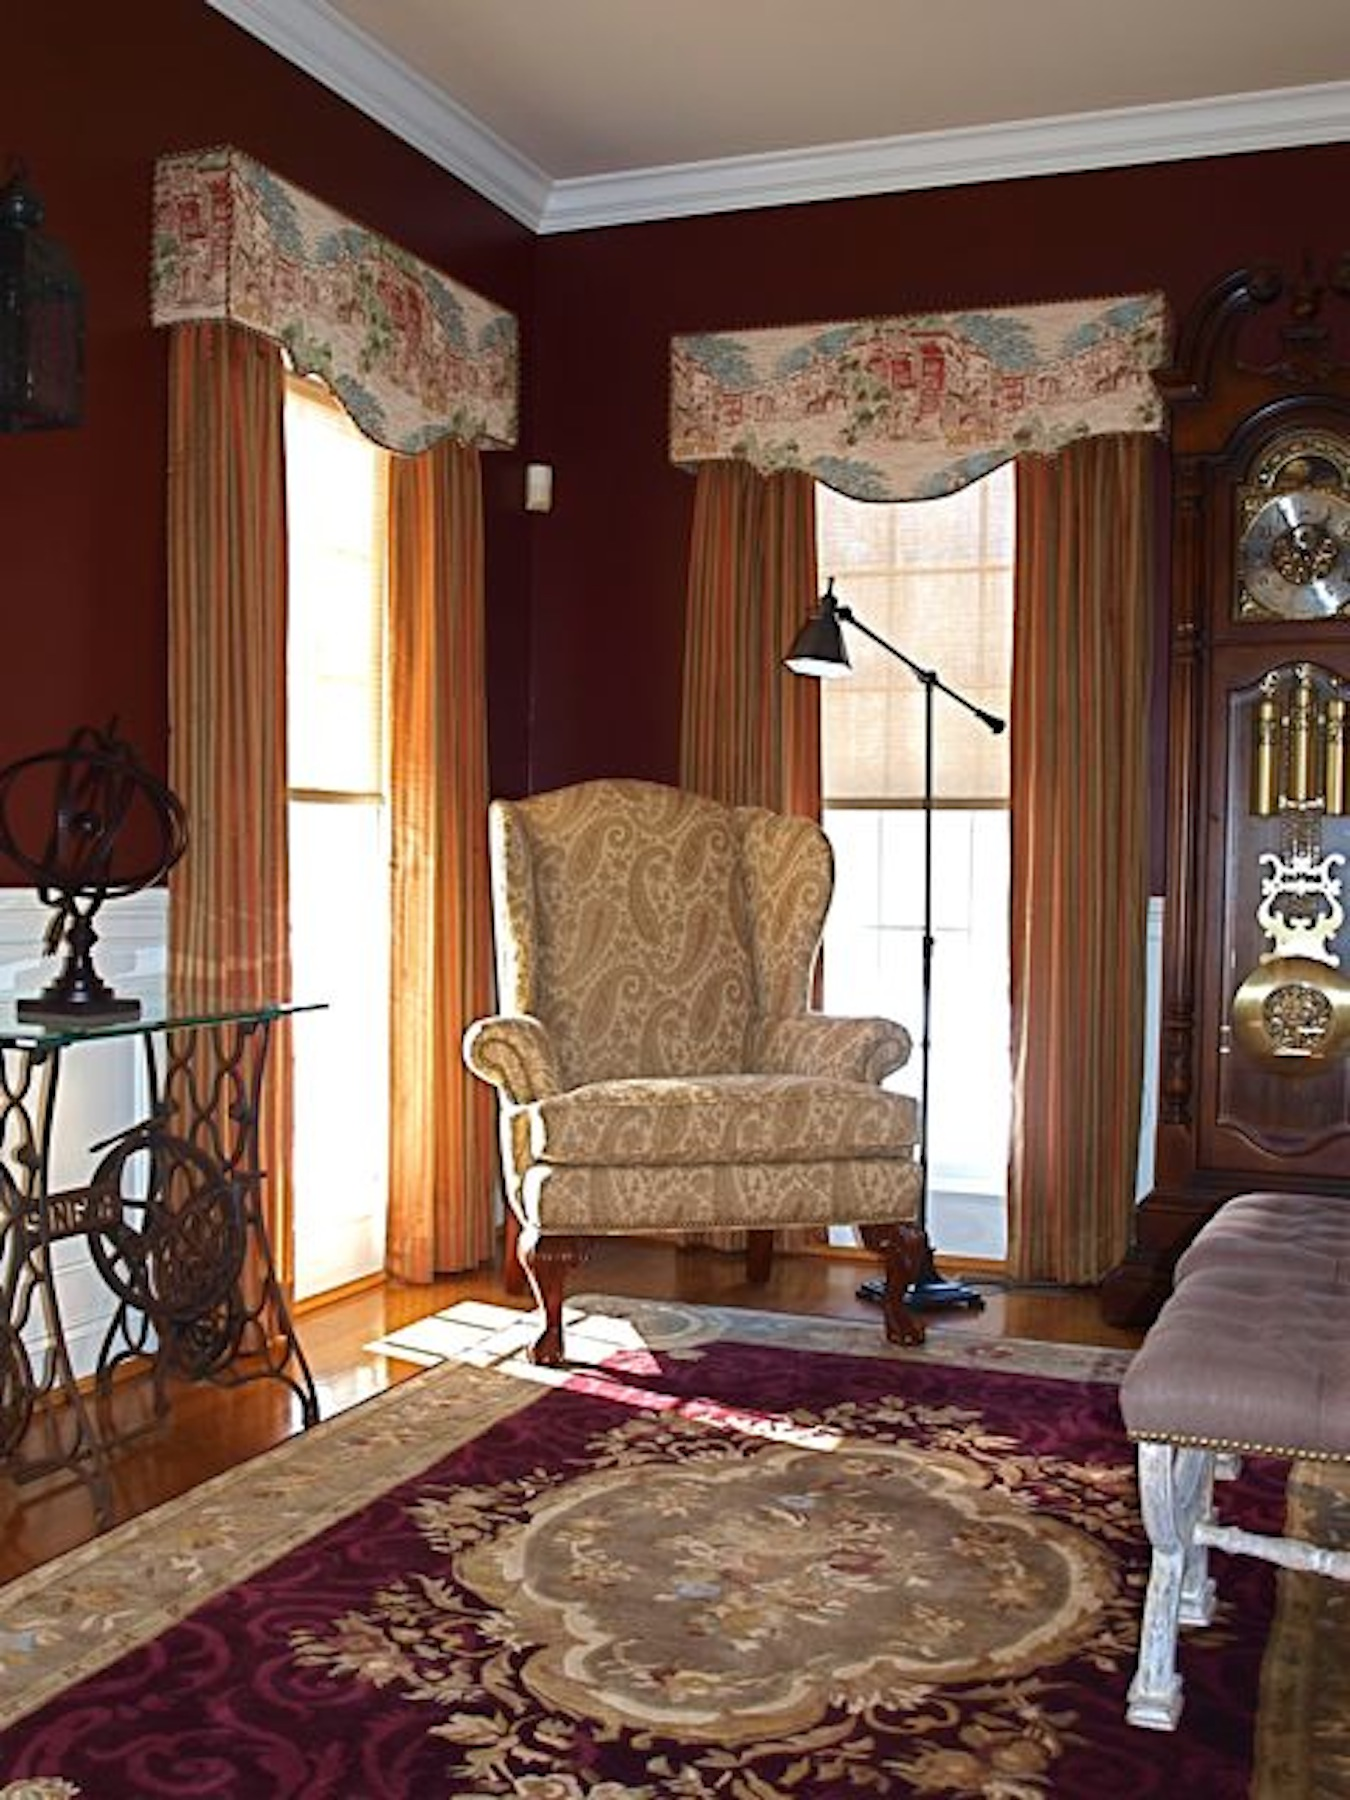 Lighter Brown Curtains With Upper Decoration As The Corner Window Curtain  Idea A Comfy Corner Chair